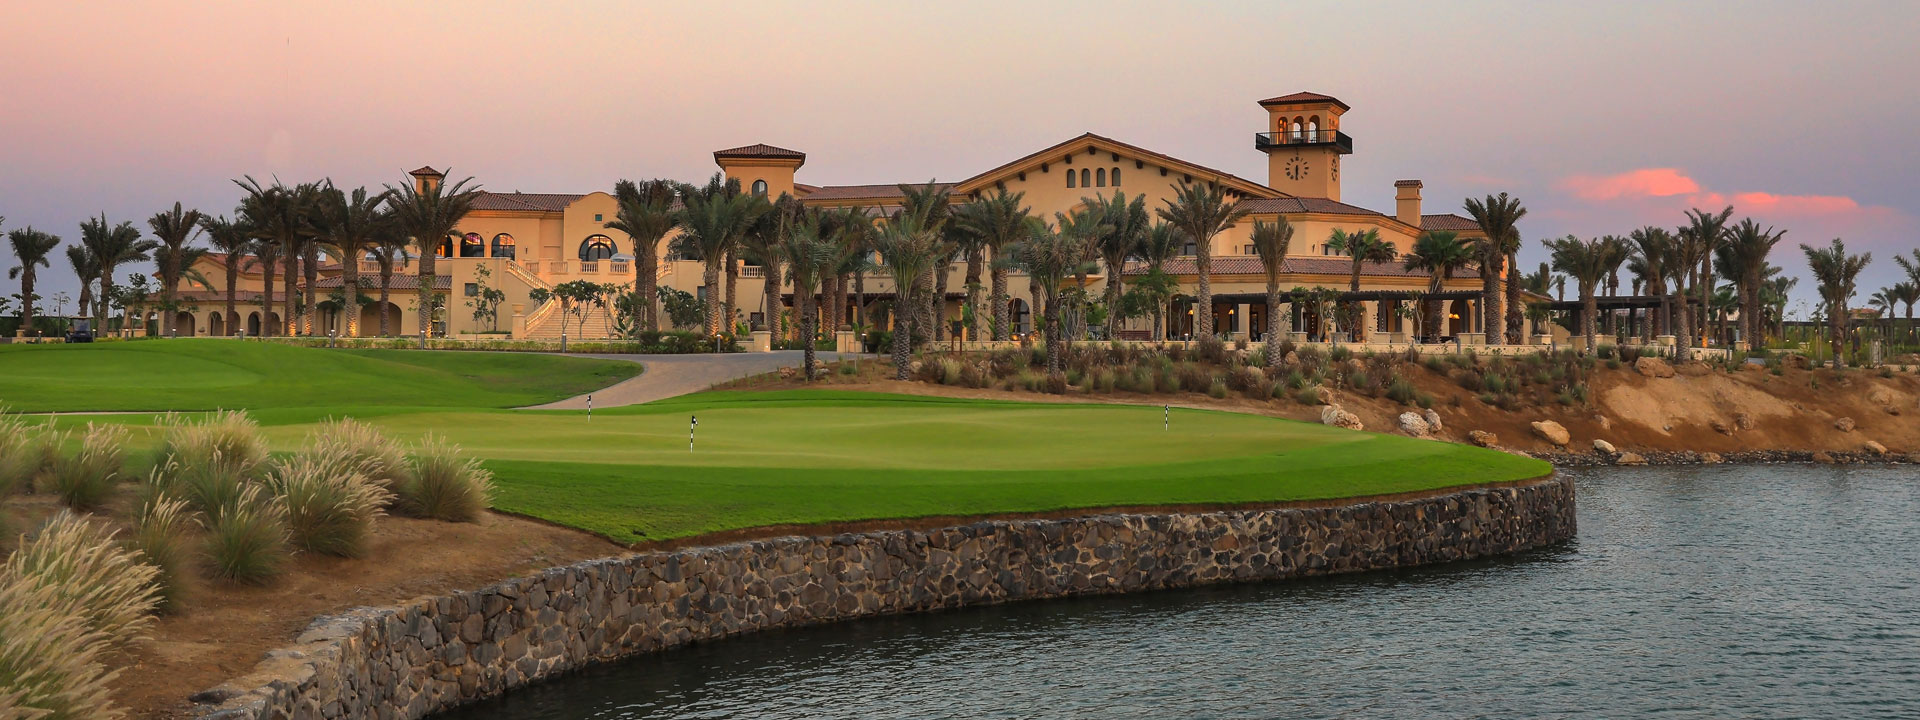 Royal Greens Images - Visit KAEC